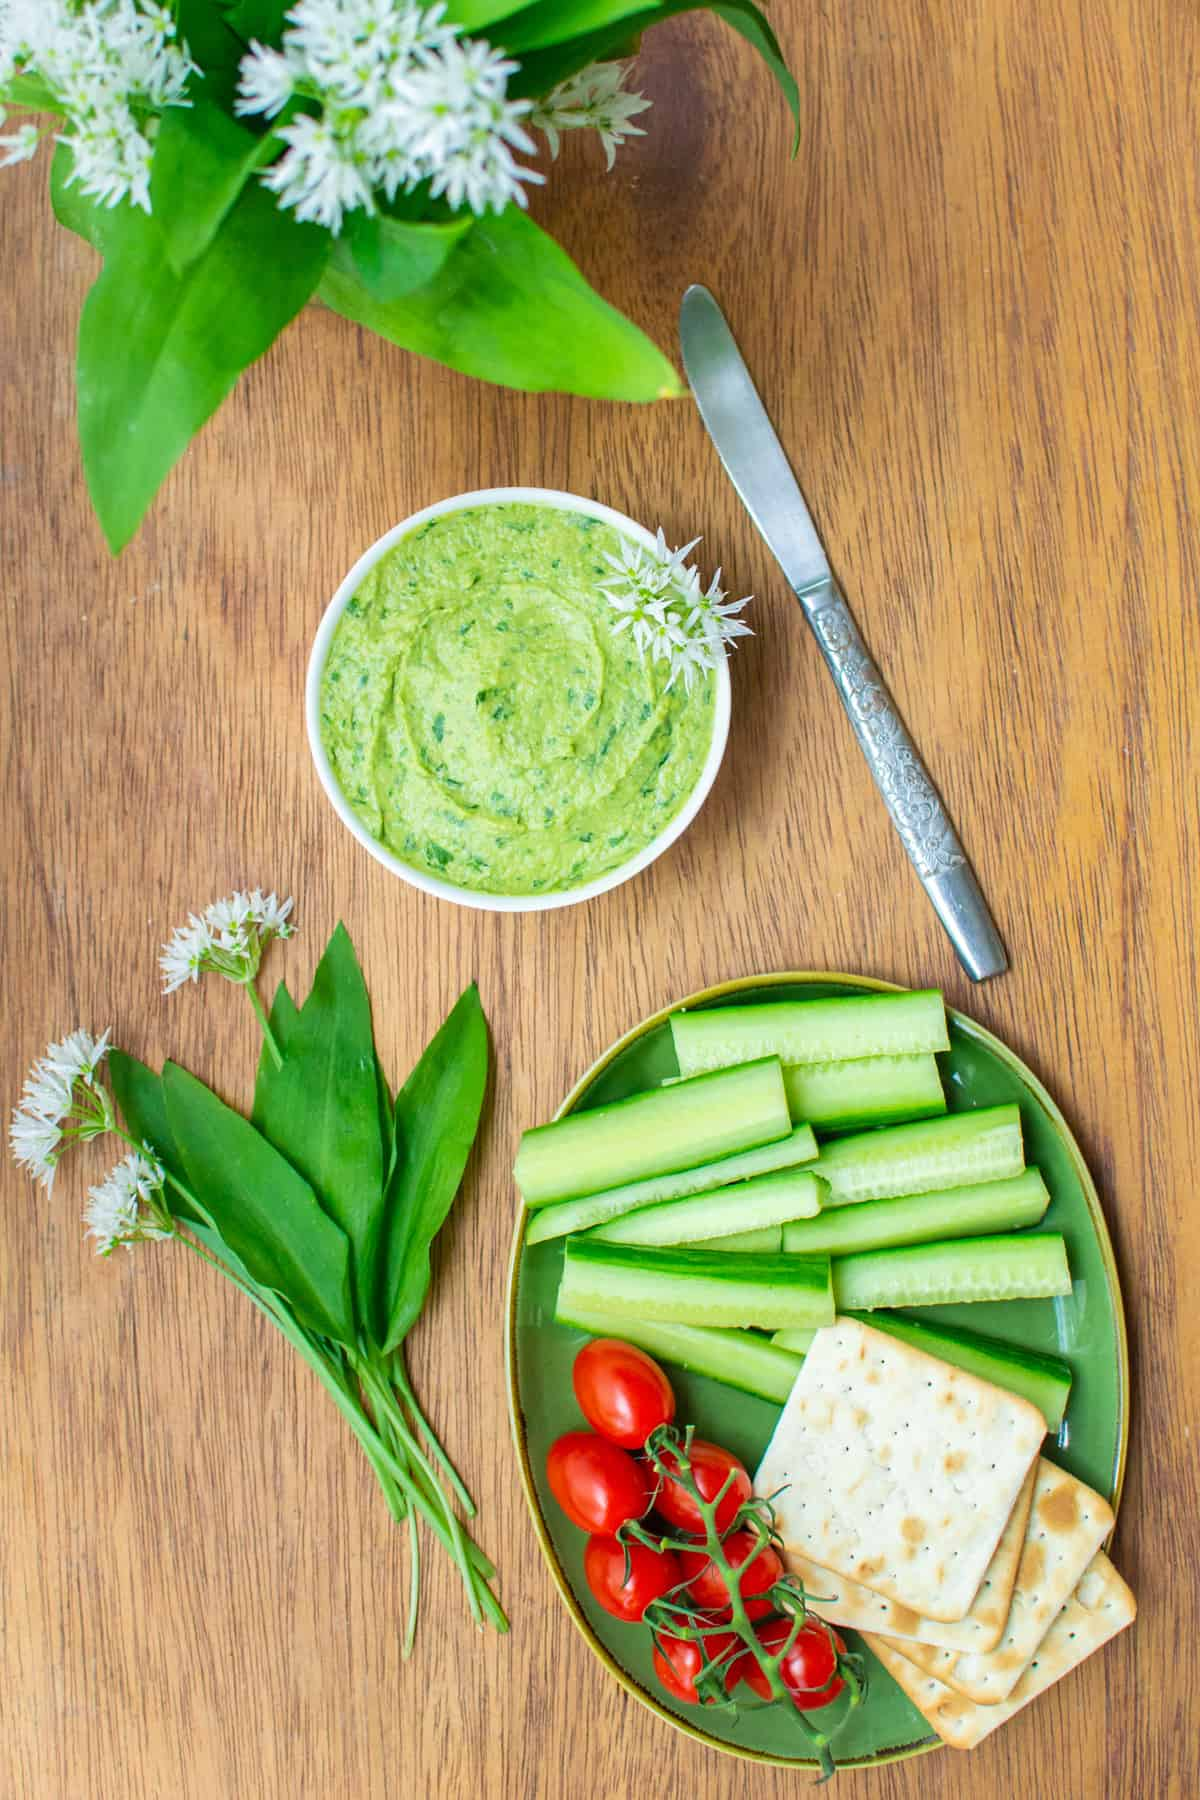 A bowl of green hummus decorated with wild garlic flowers, next to a plate of crudités and crackers.